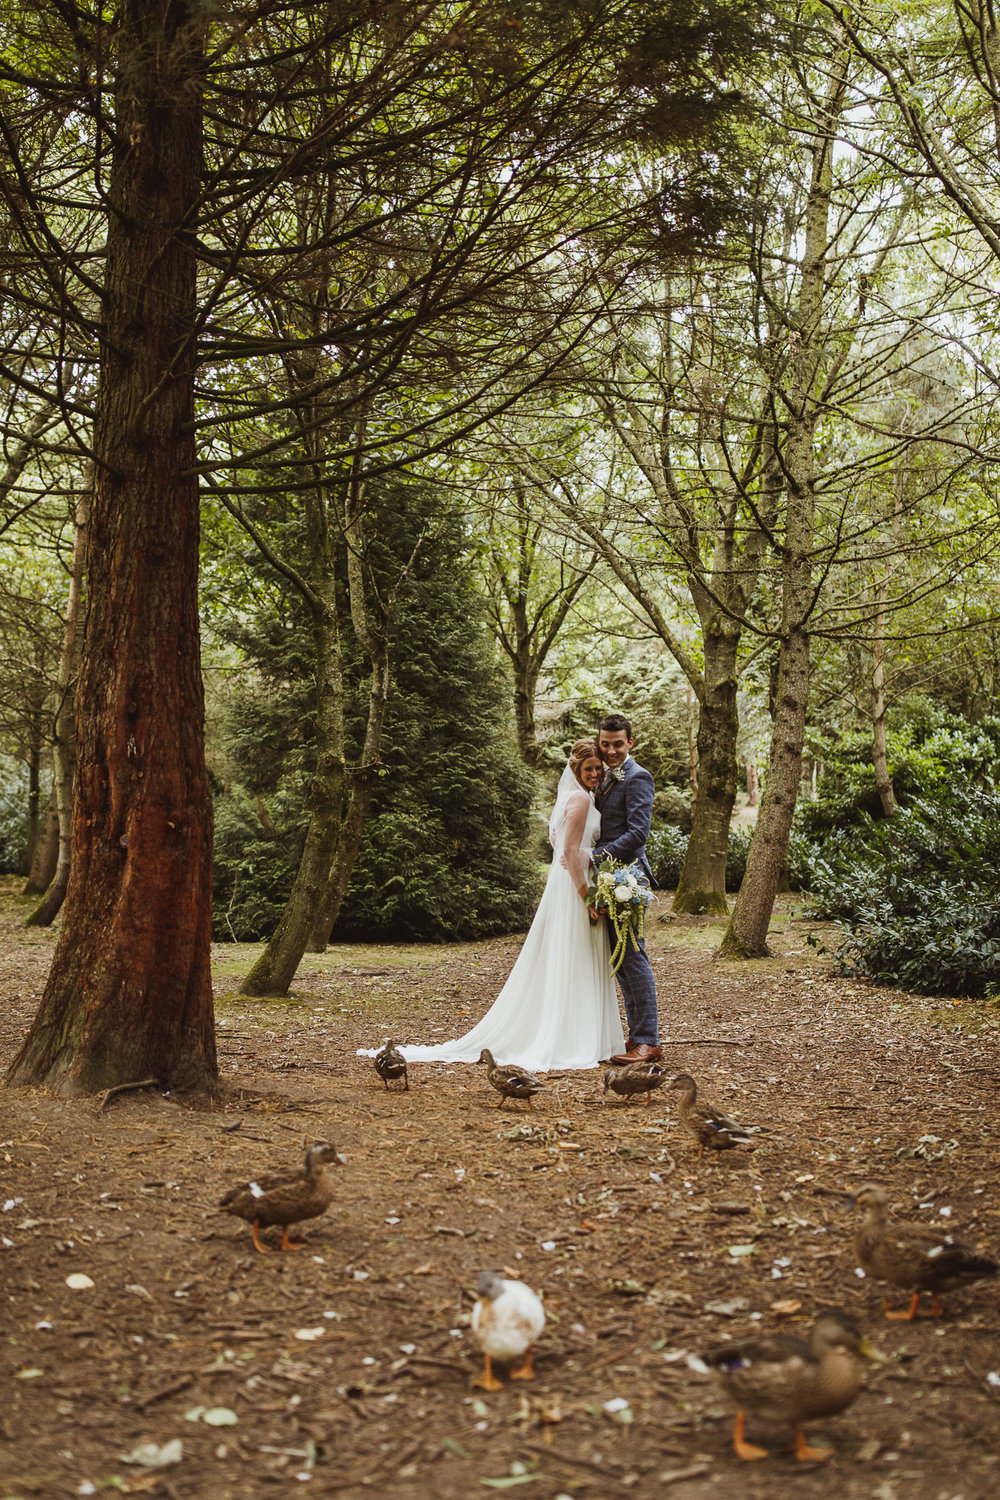 forbidden_corner_tupgill_estate_wedding_photographer-97.jpg